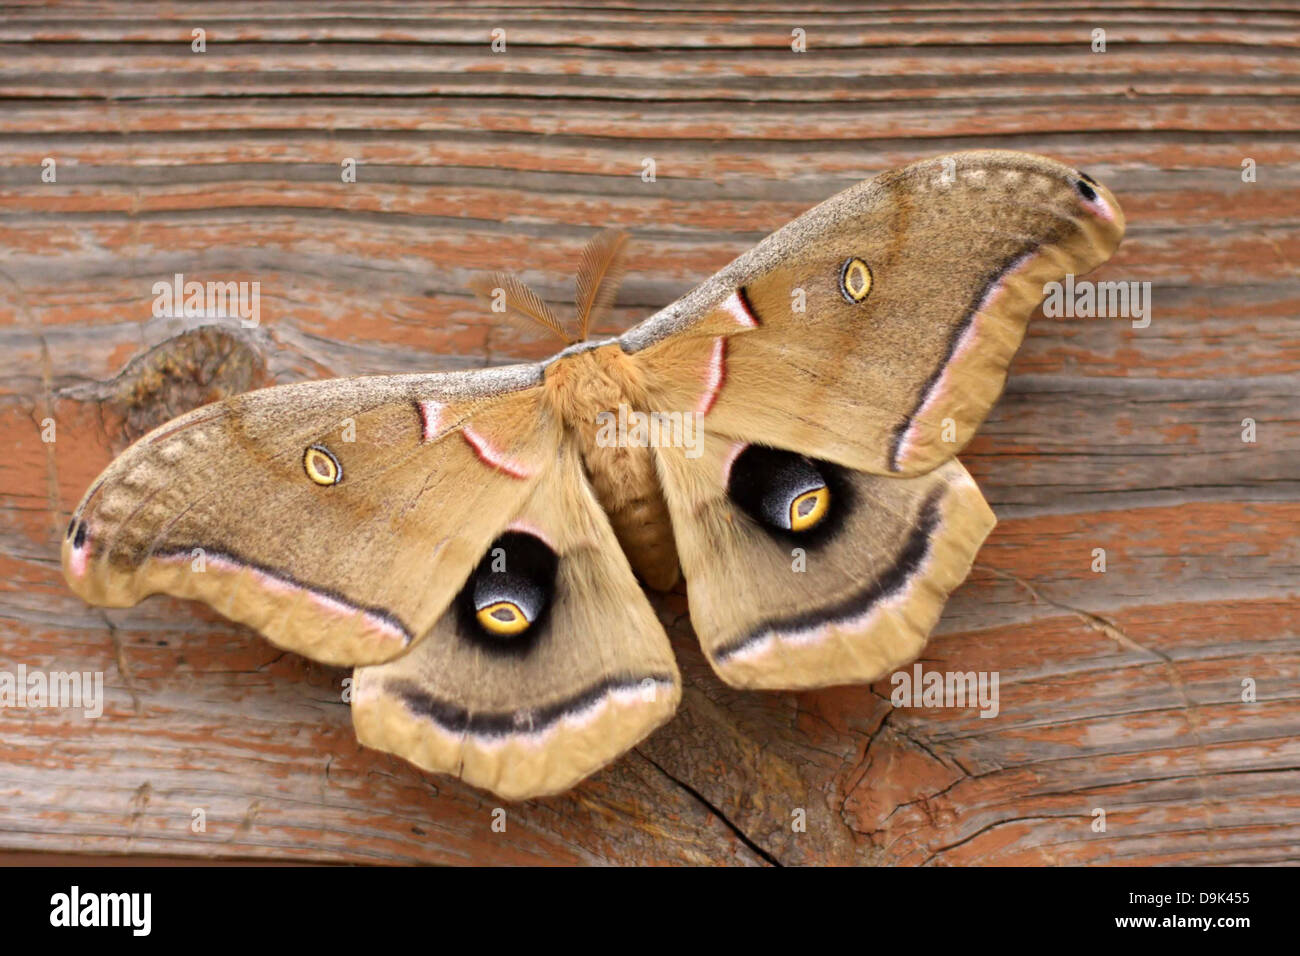 yellow tan black white butterfly, insect, bug, moth on wood - Stock Image